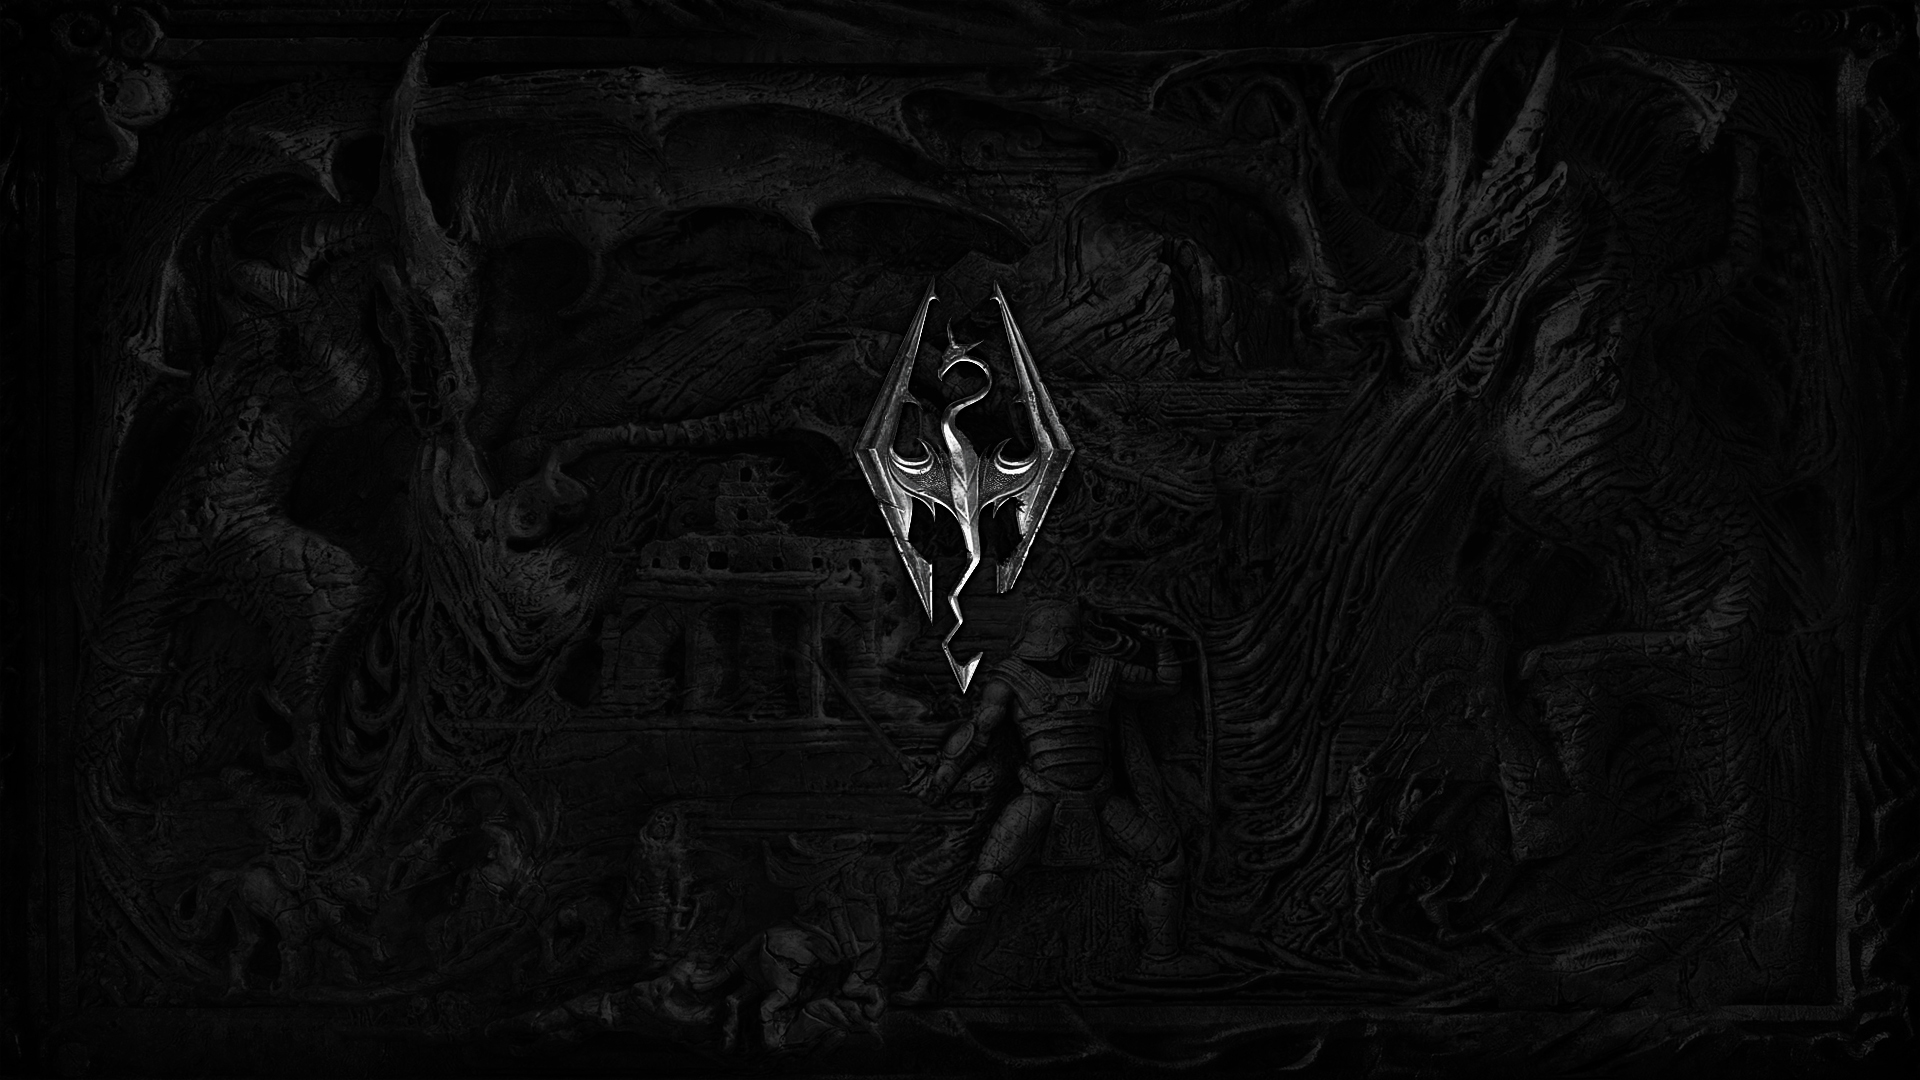 The Elder Scrolls V: Skyrim wallpaper engraving